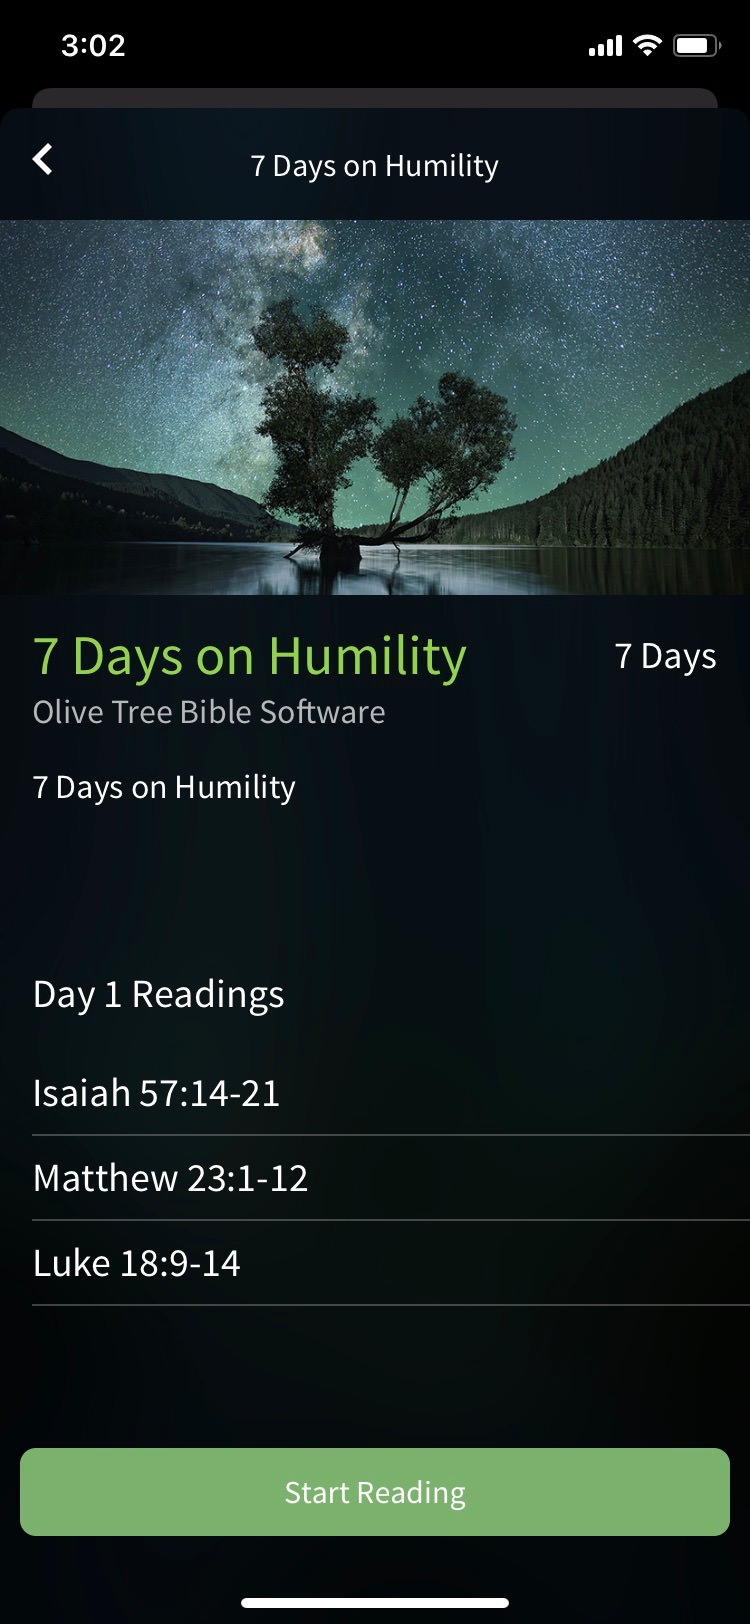 bible app by olive tree study plan